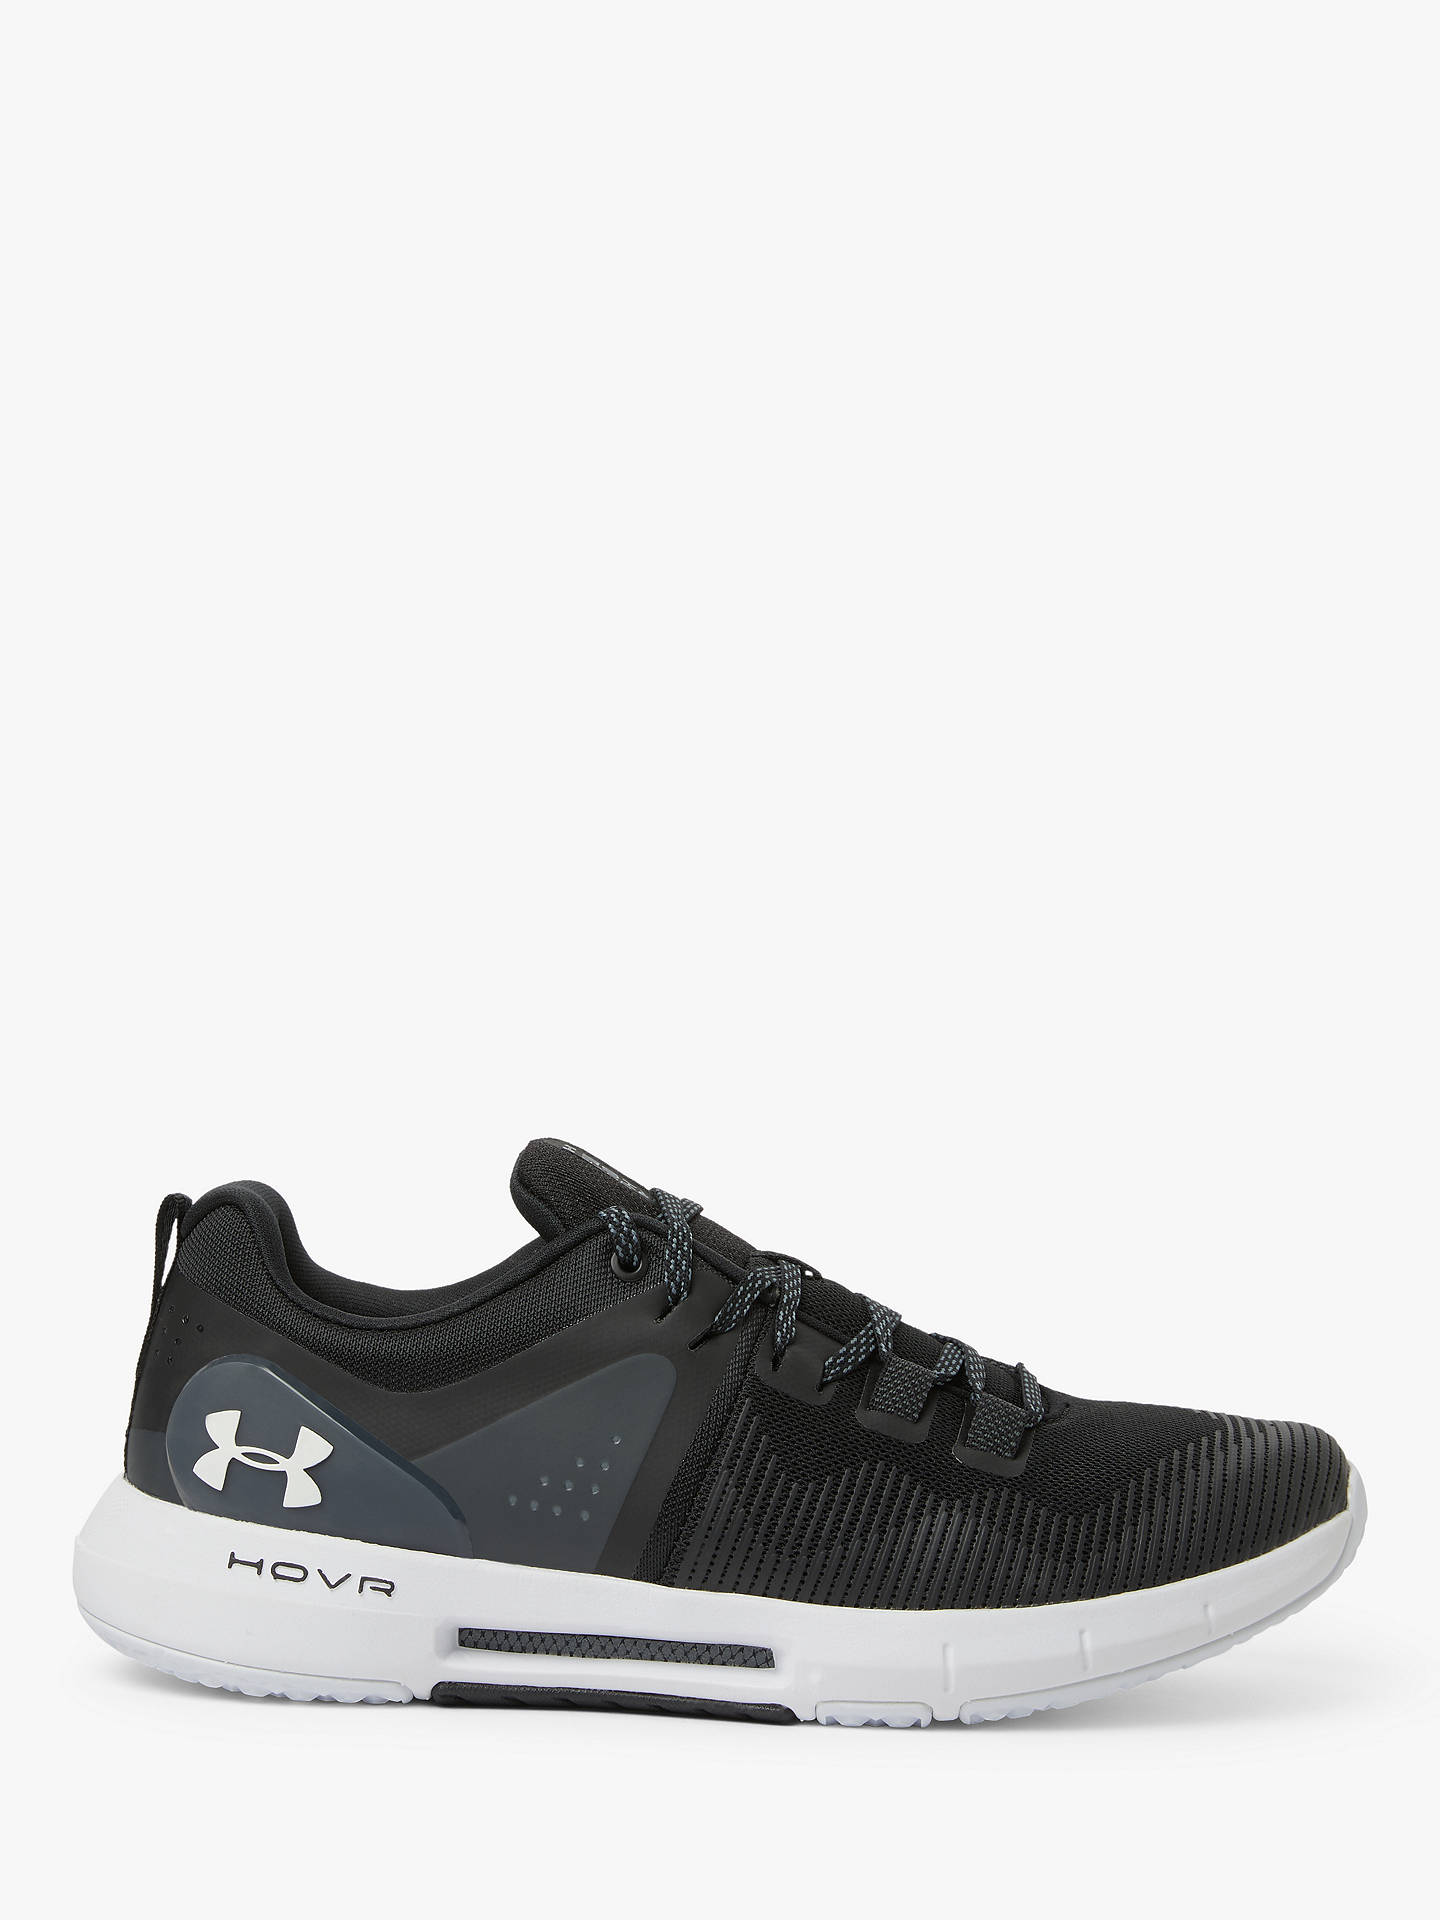 best website 15923 b7f65 Under Armour HOVR Rise Women's Cross Trainers, Black/White